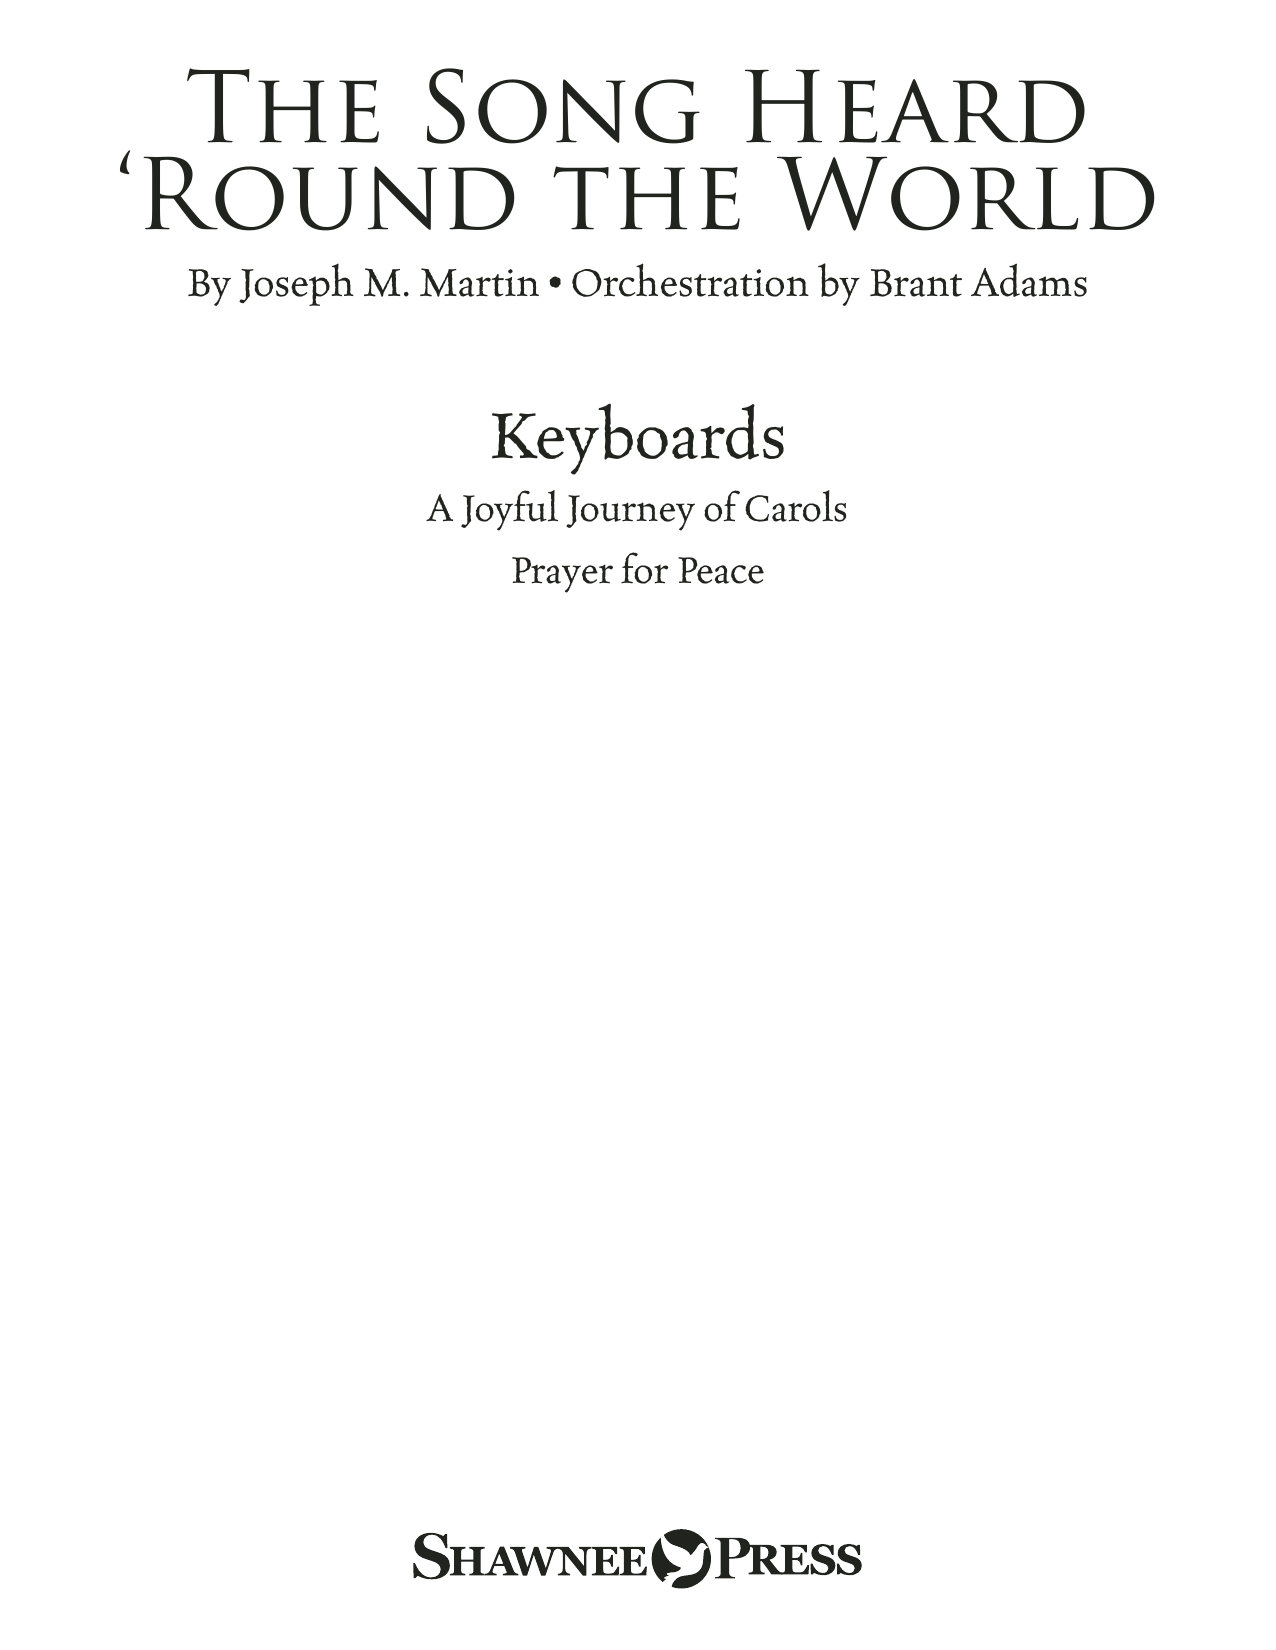 The Song Heard 'Round the World - Keyboards Sheet Music